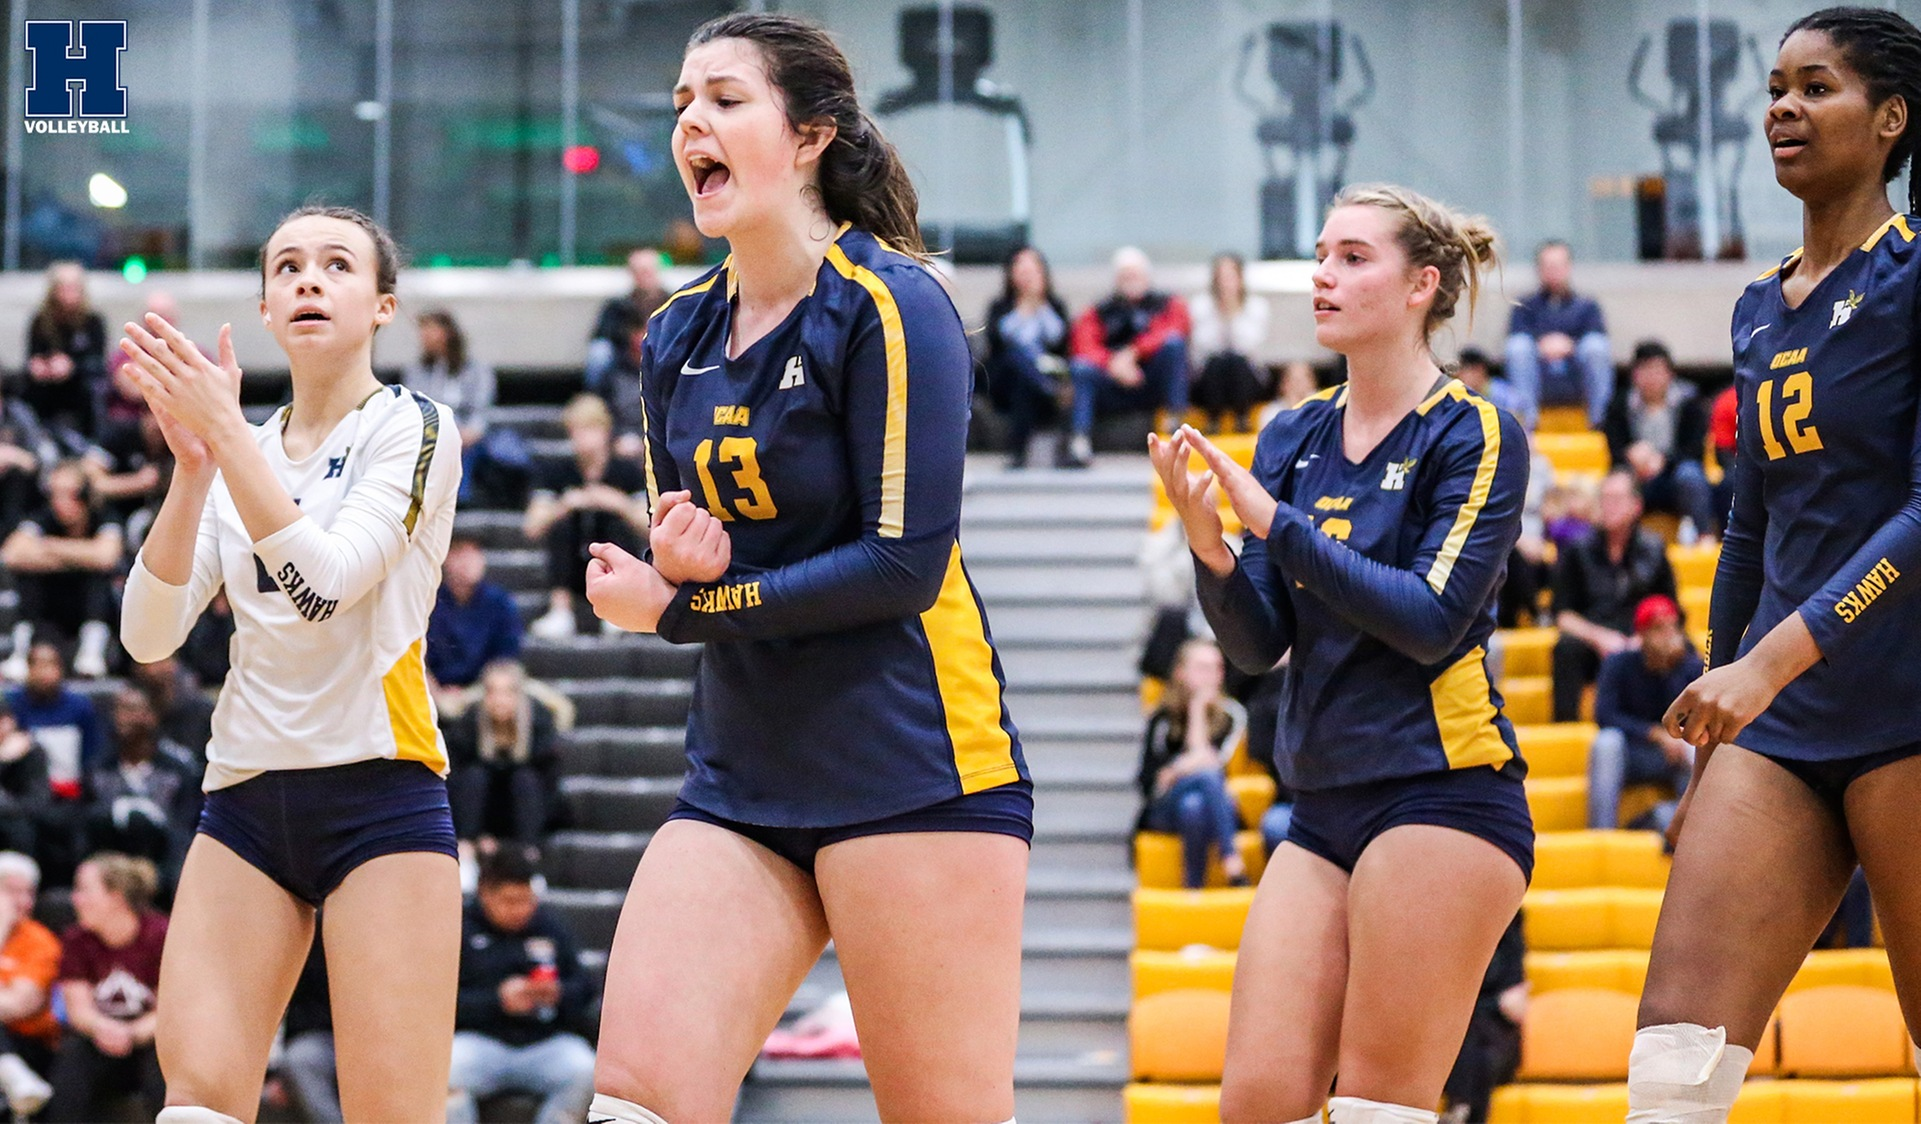 Women's Volleyball Comeback Falls Short at Mohawk